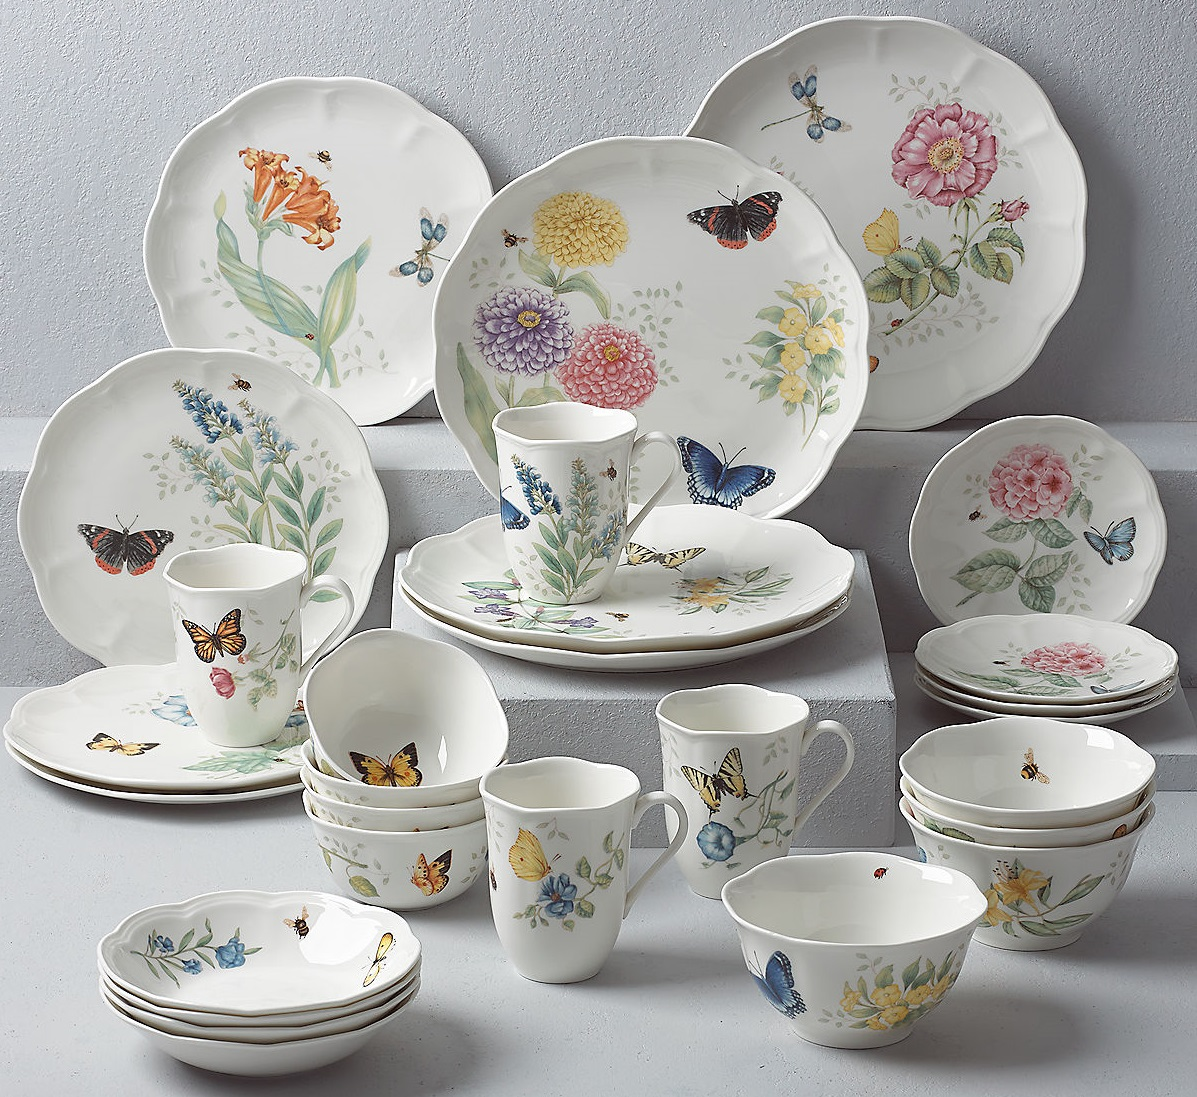 About a Corelle Dinnerware Set